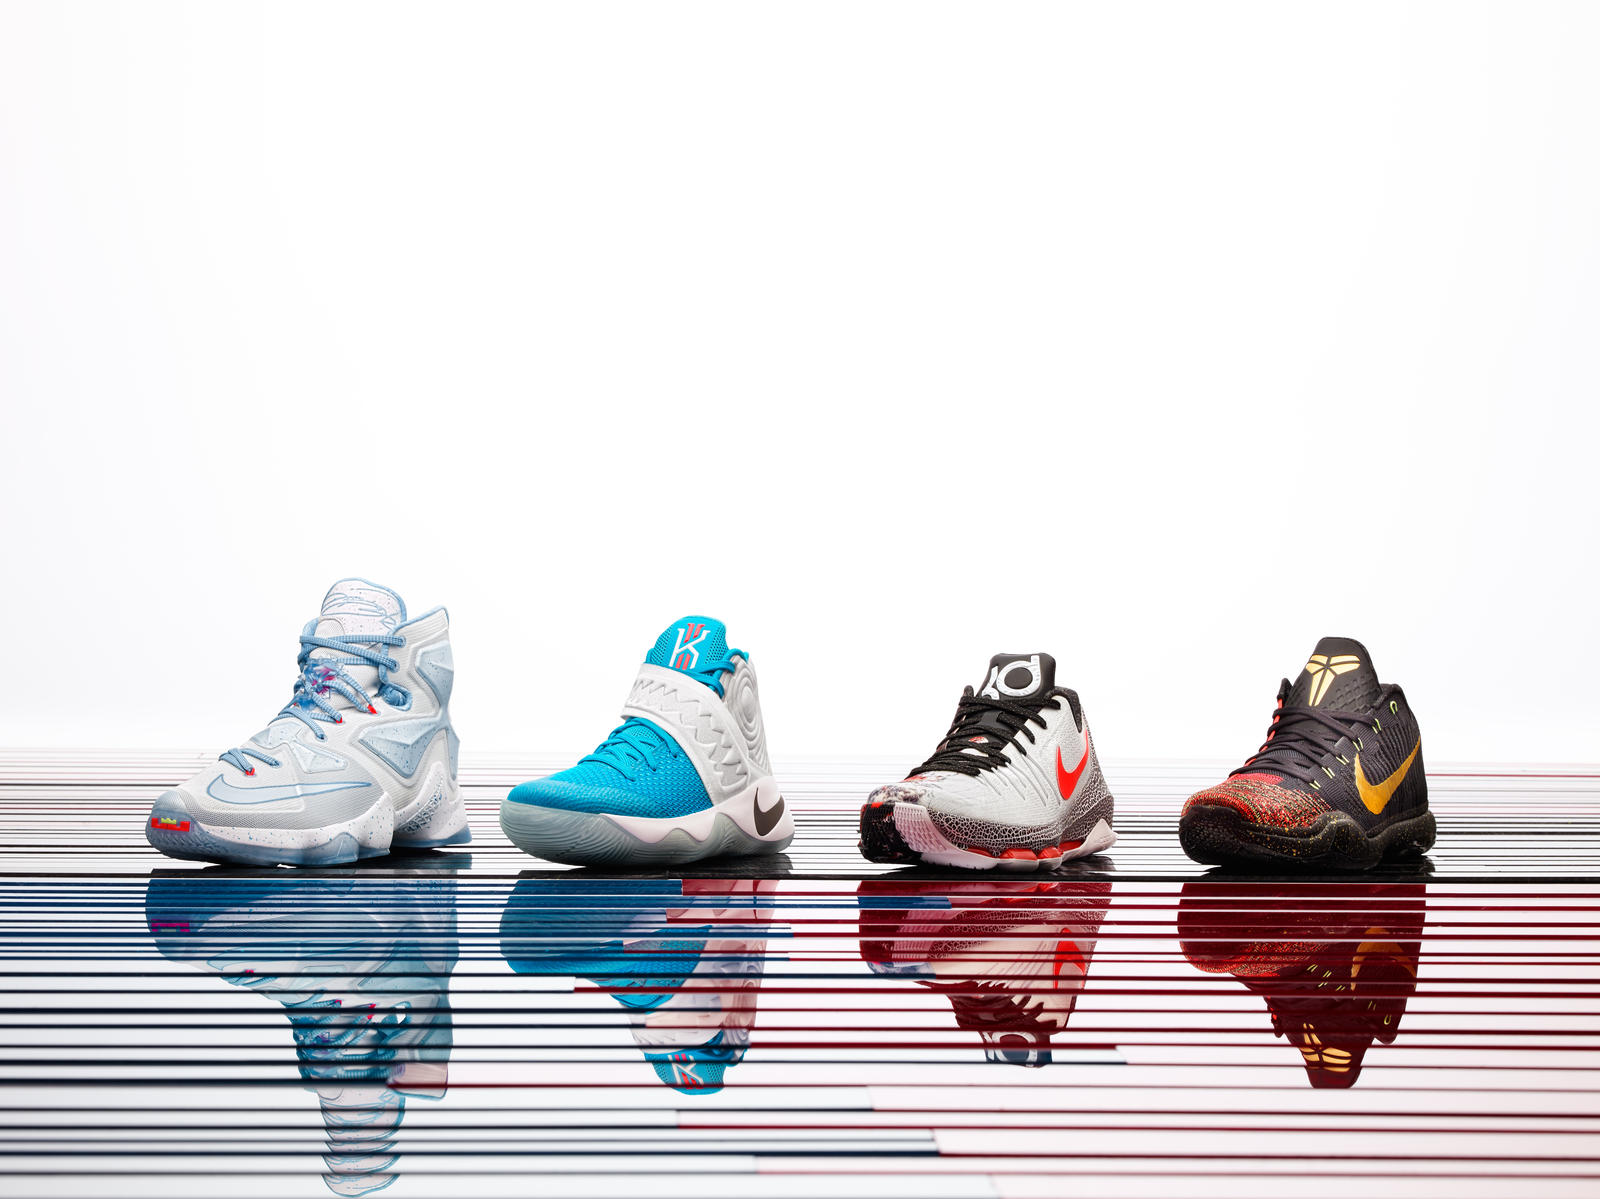 Fire and Ice: The 2015 Nike Basketball Christmas Collection - Nike News